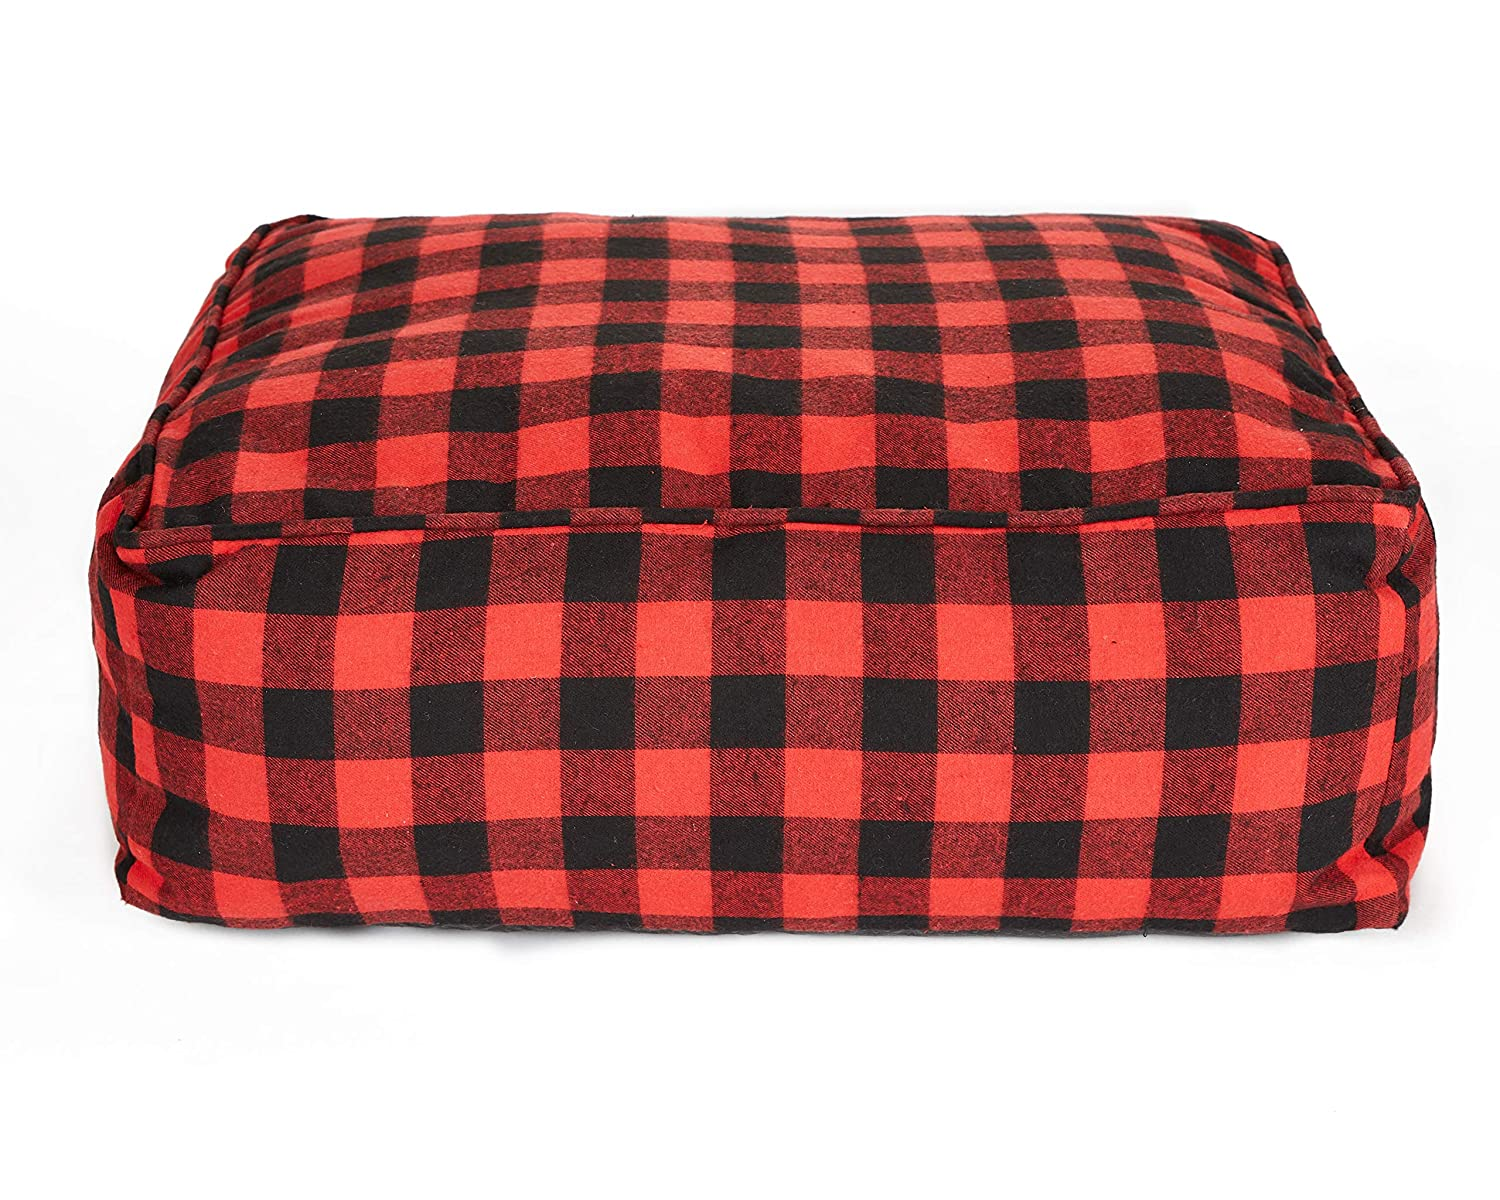 Hotel Doggy Crafted Cabin Cushion Dog Bed   Red Black Pet Bed